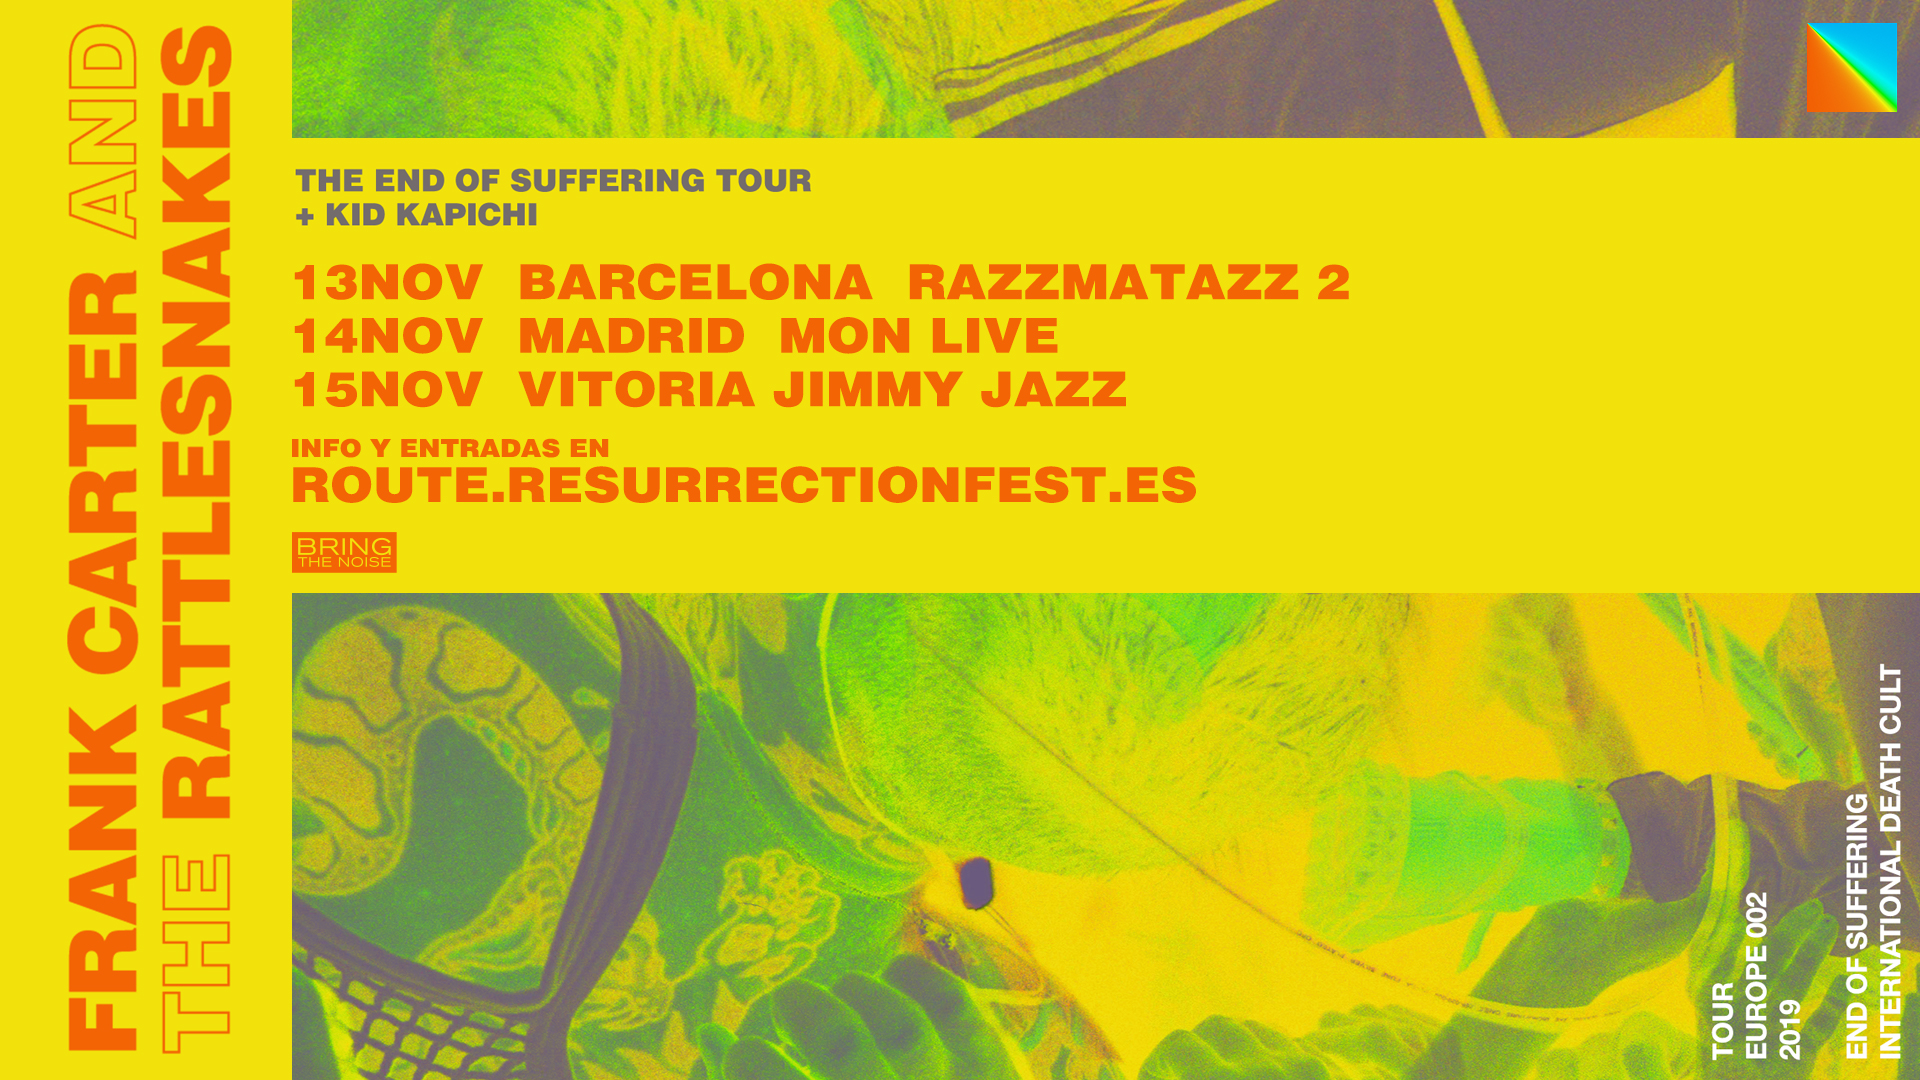 Route Resurrection Fest 2019 - FRANK CARTER AND THE RATTLESNAKES - Event